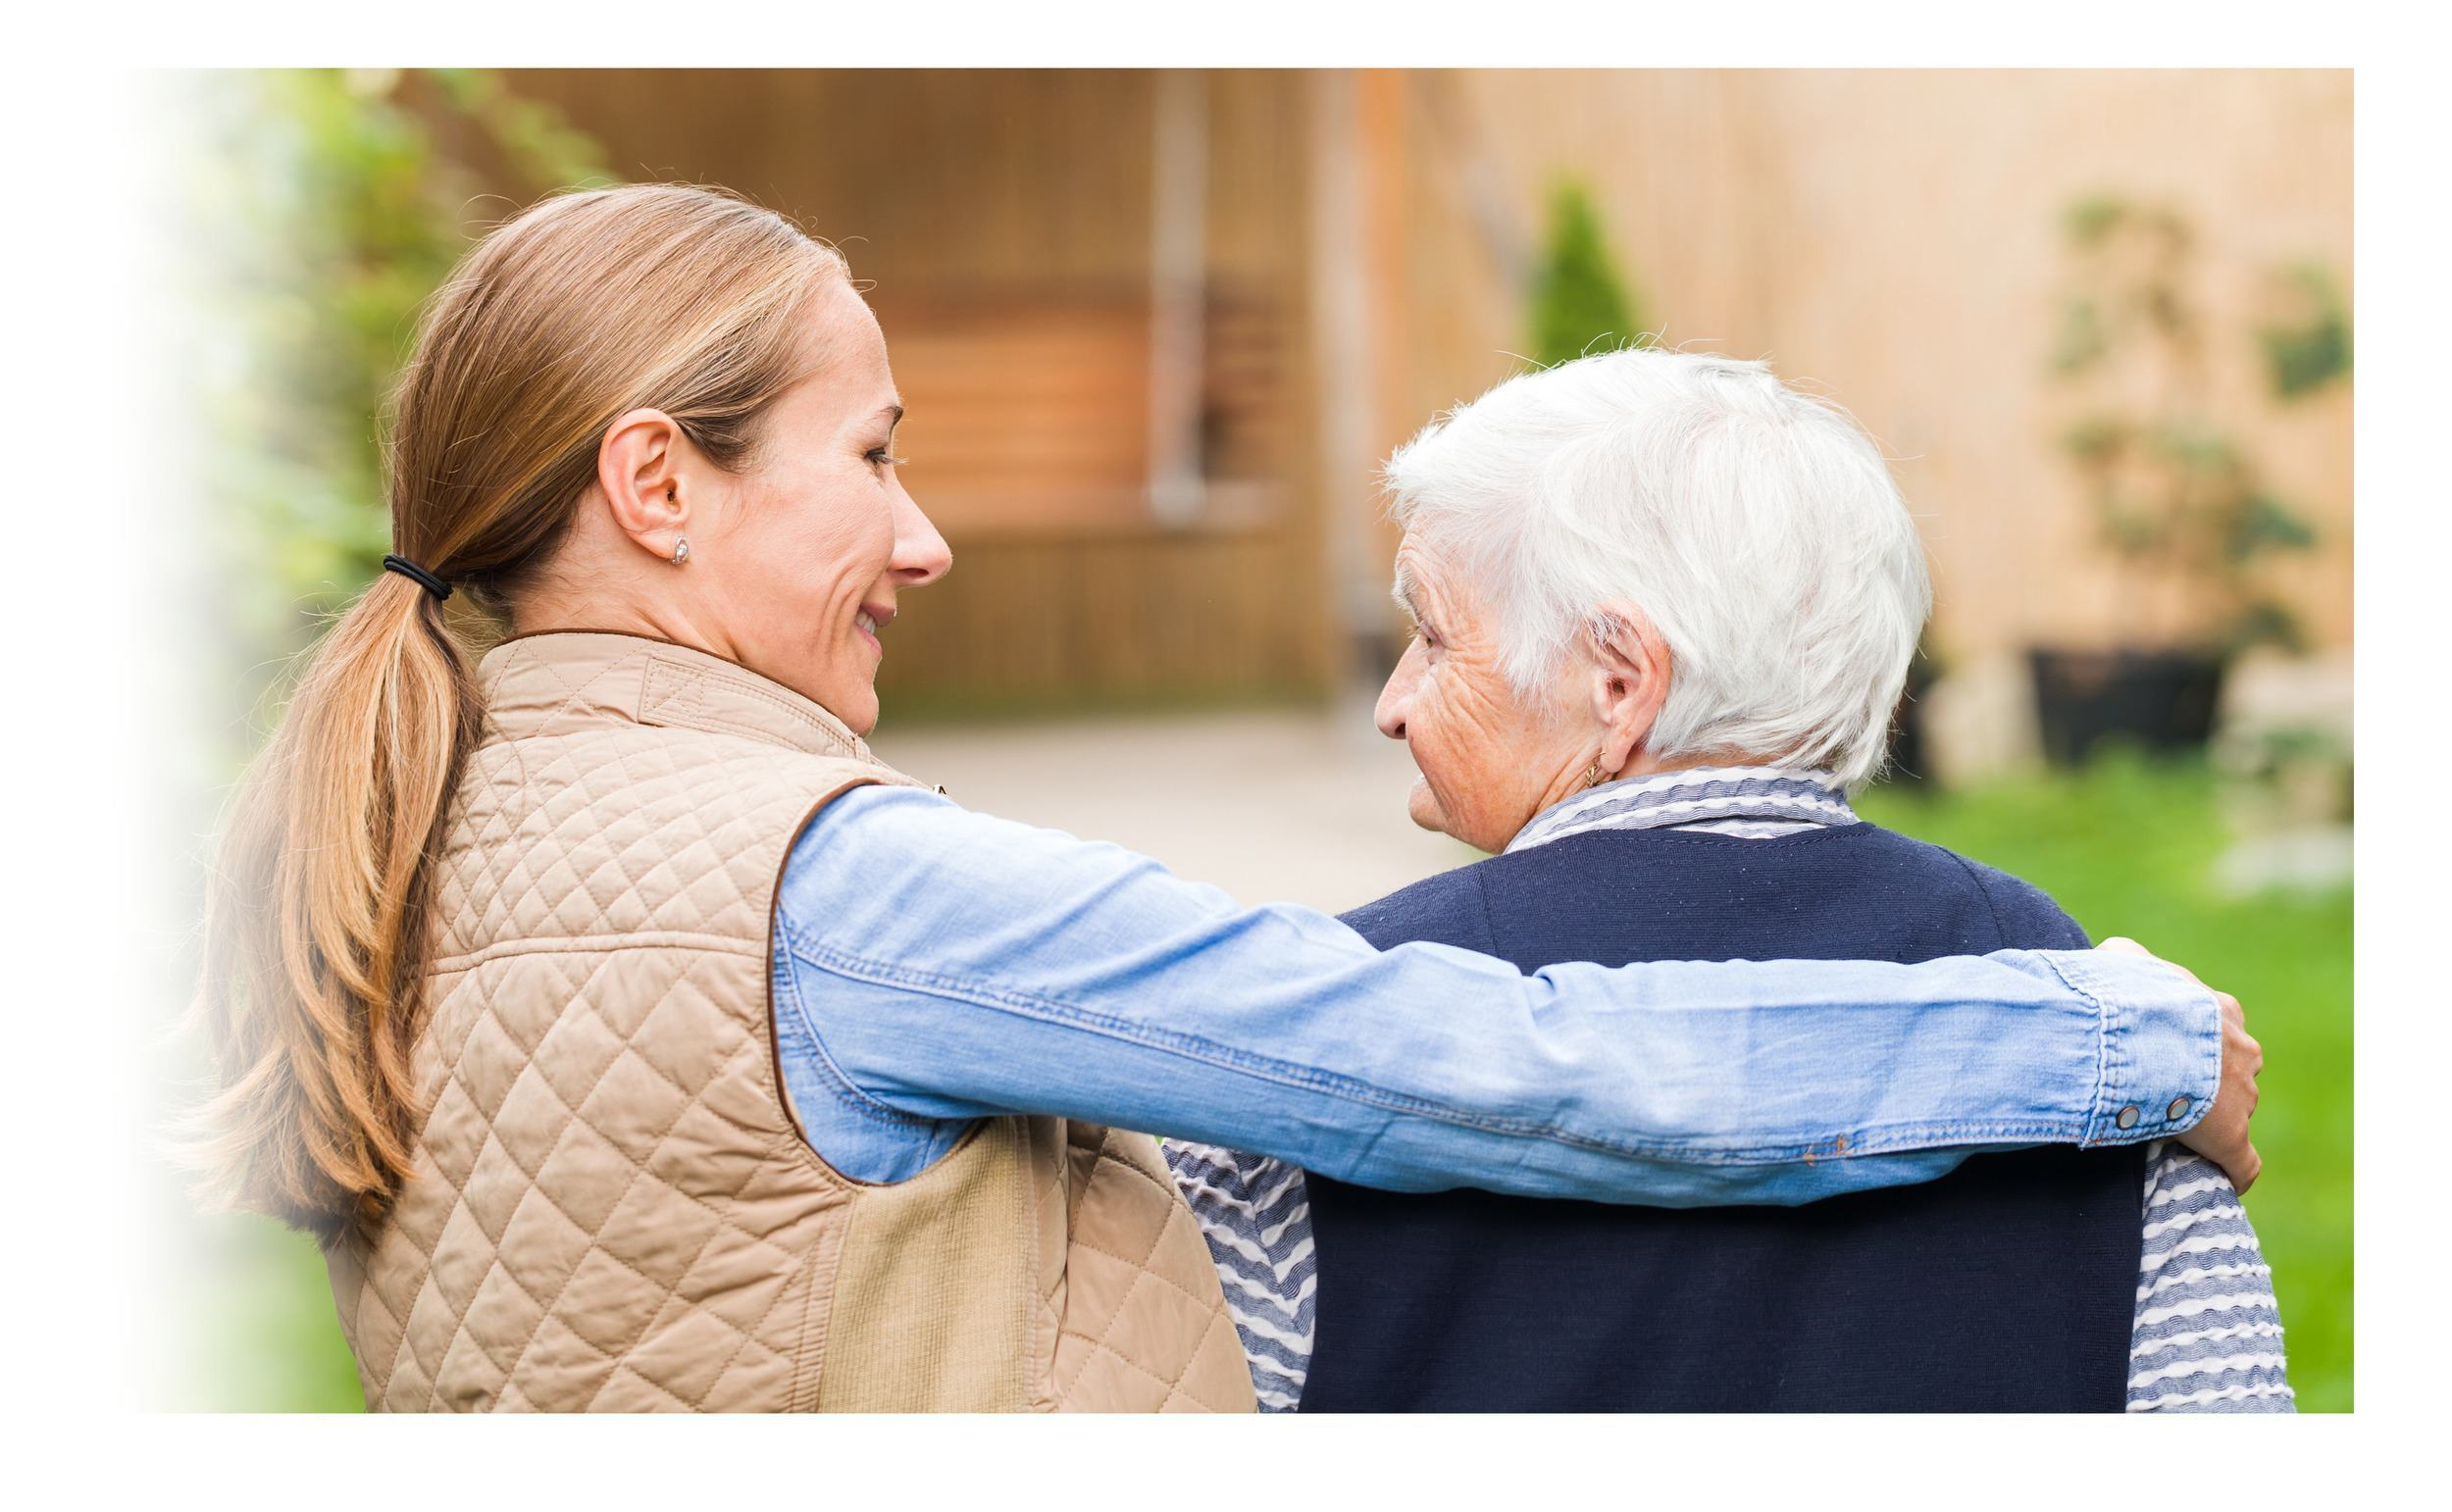 Learn more about our culture of caring at Milestone Retirement Communities